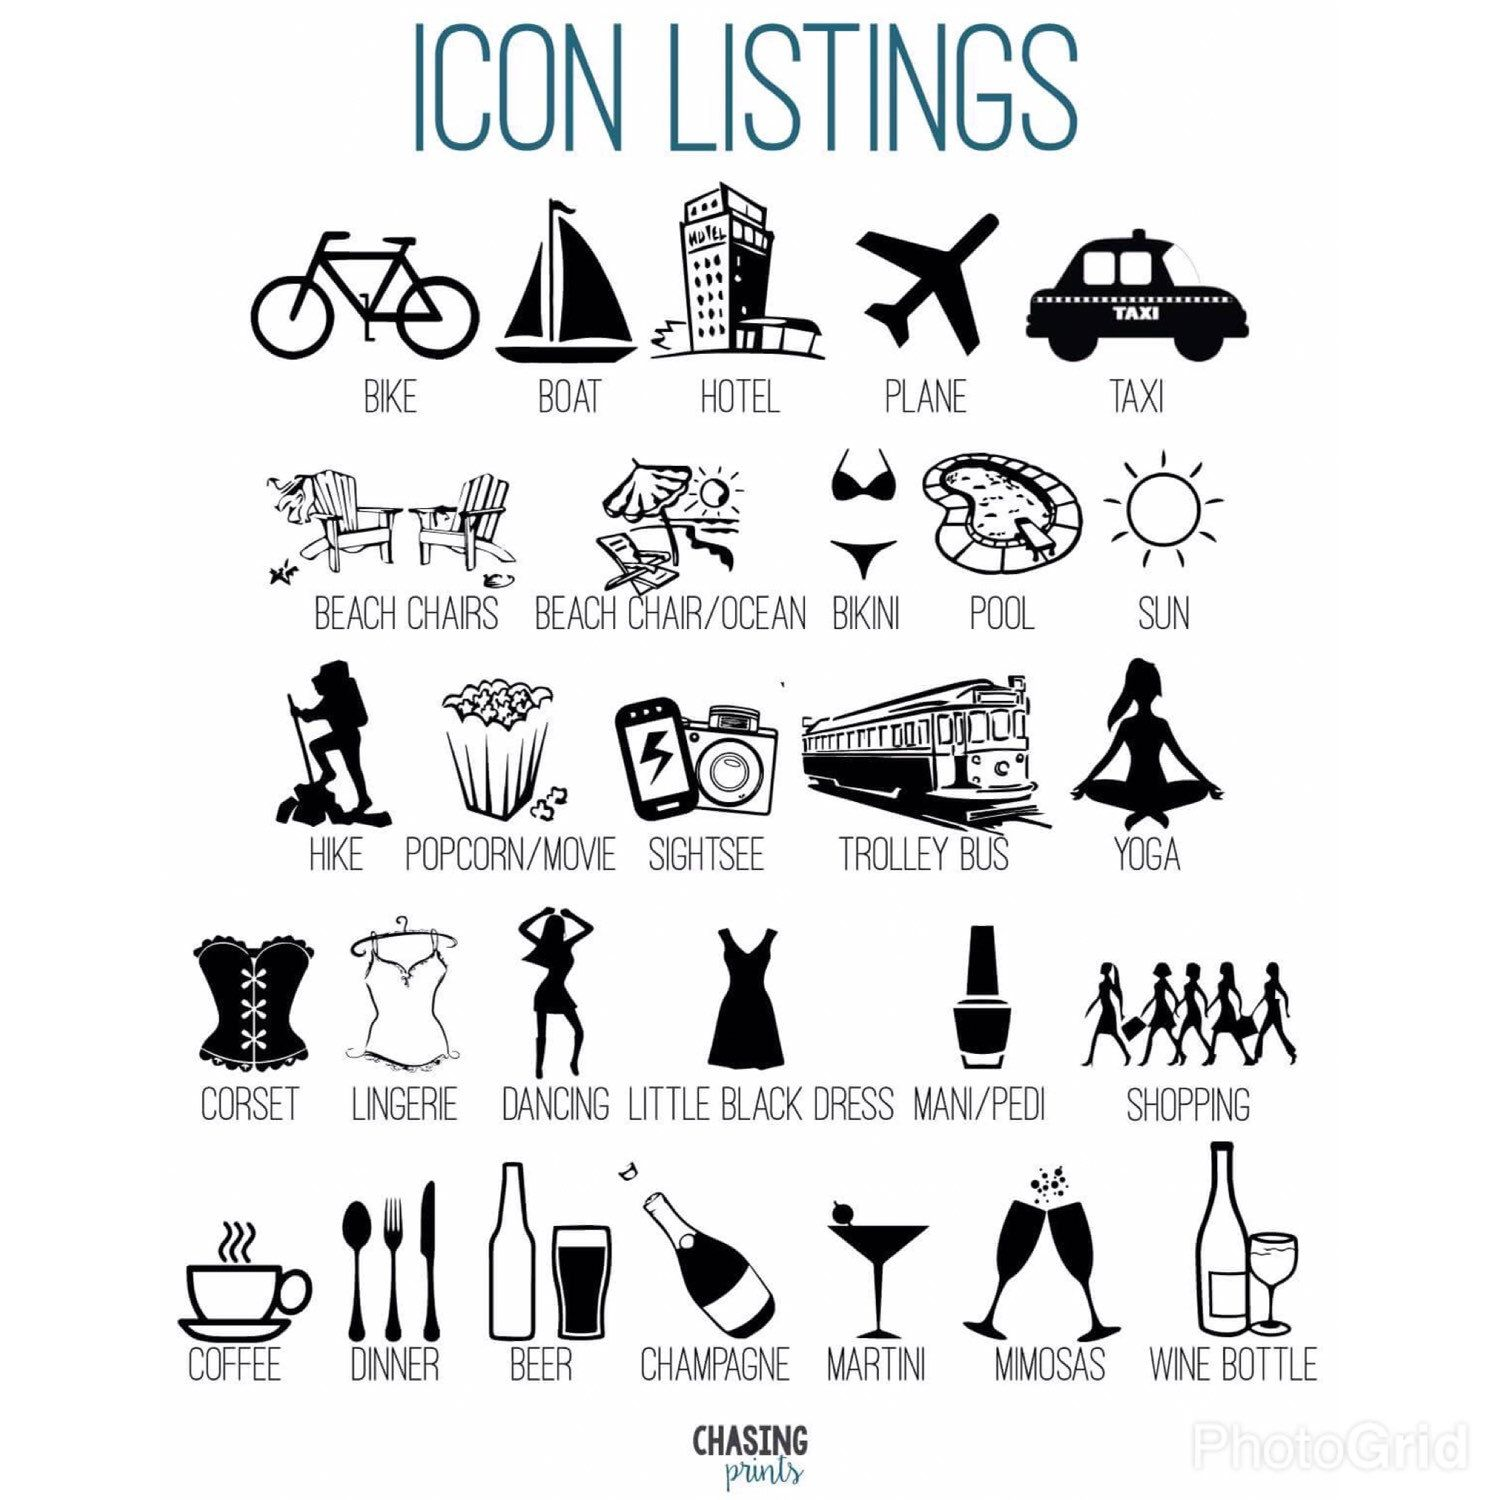 Lots of new icons for the timeline bachelorette weekend